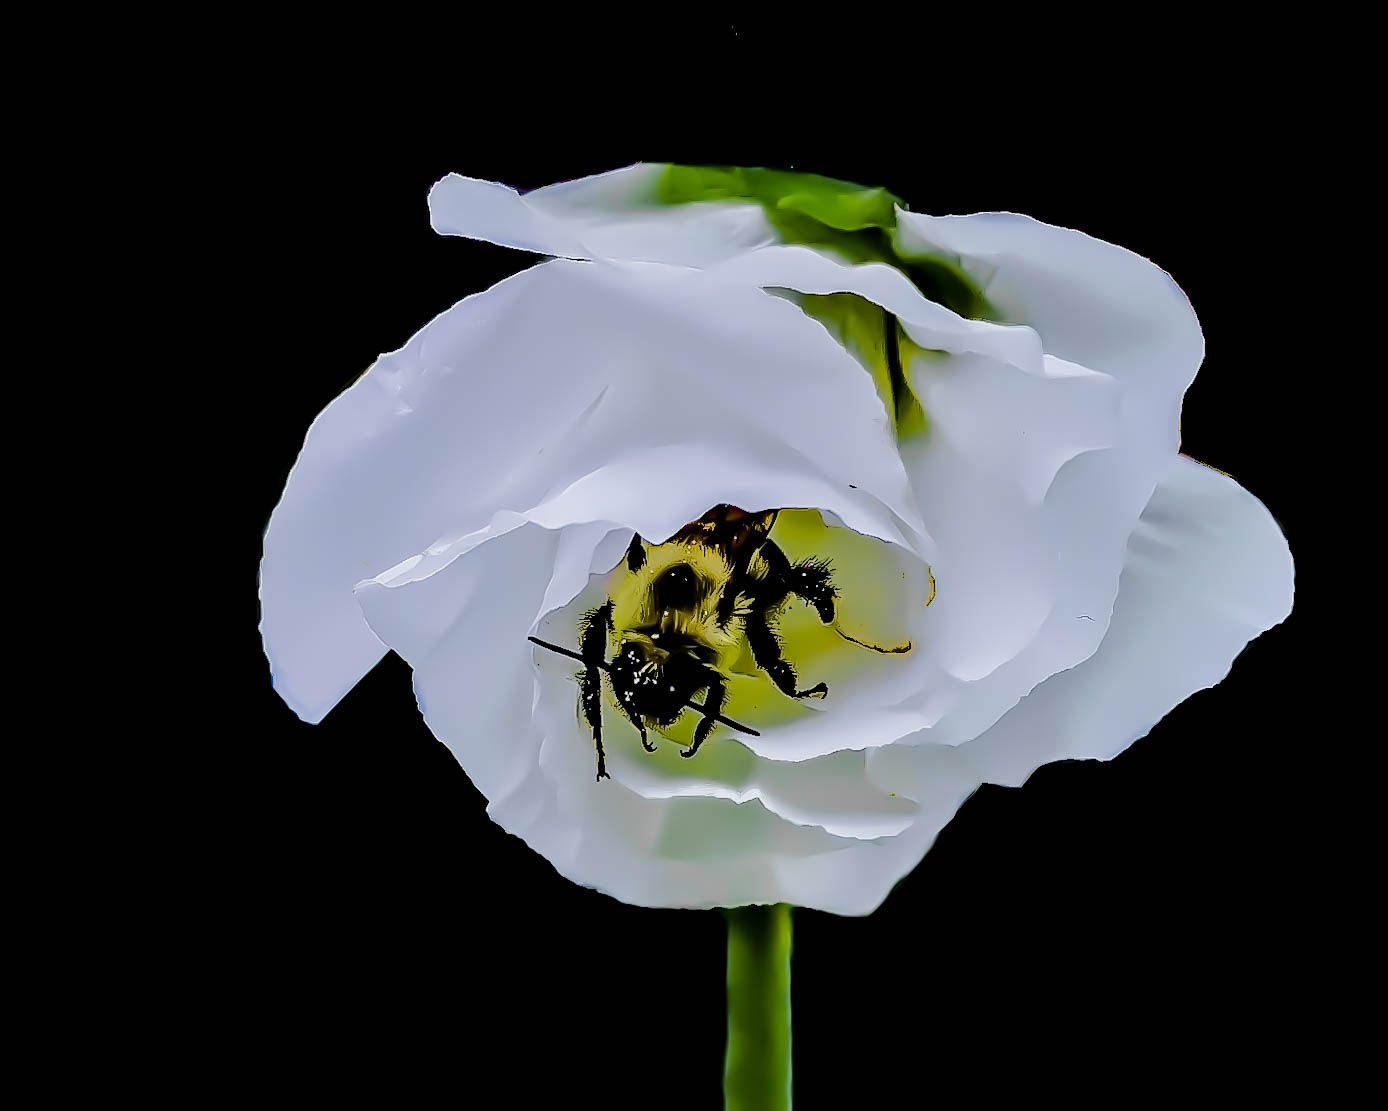 Bee In Translucent Blosson by Edward Brown